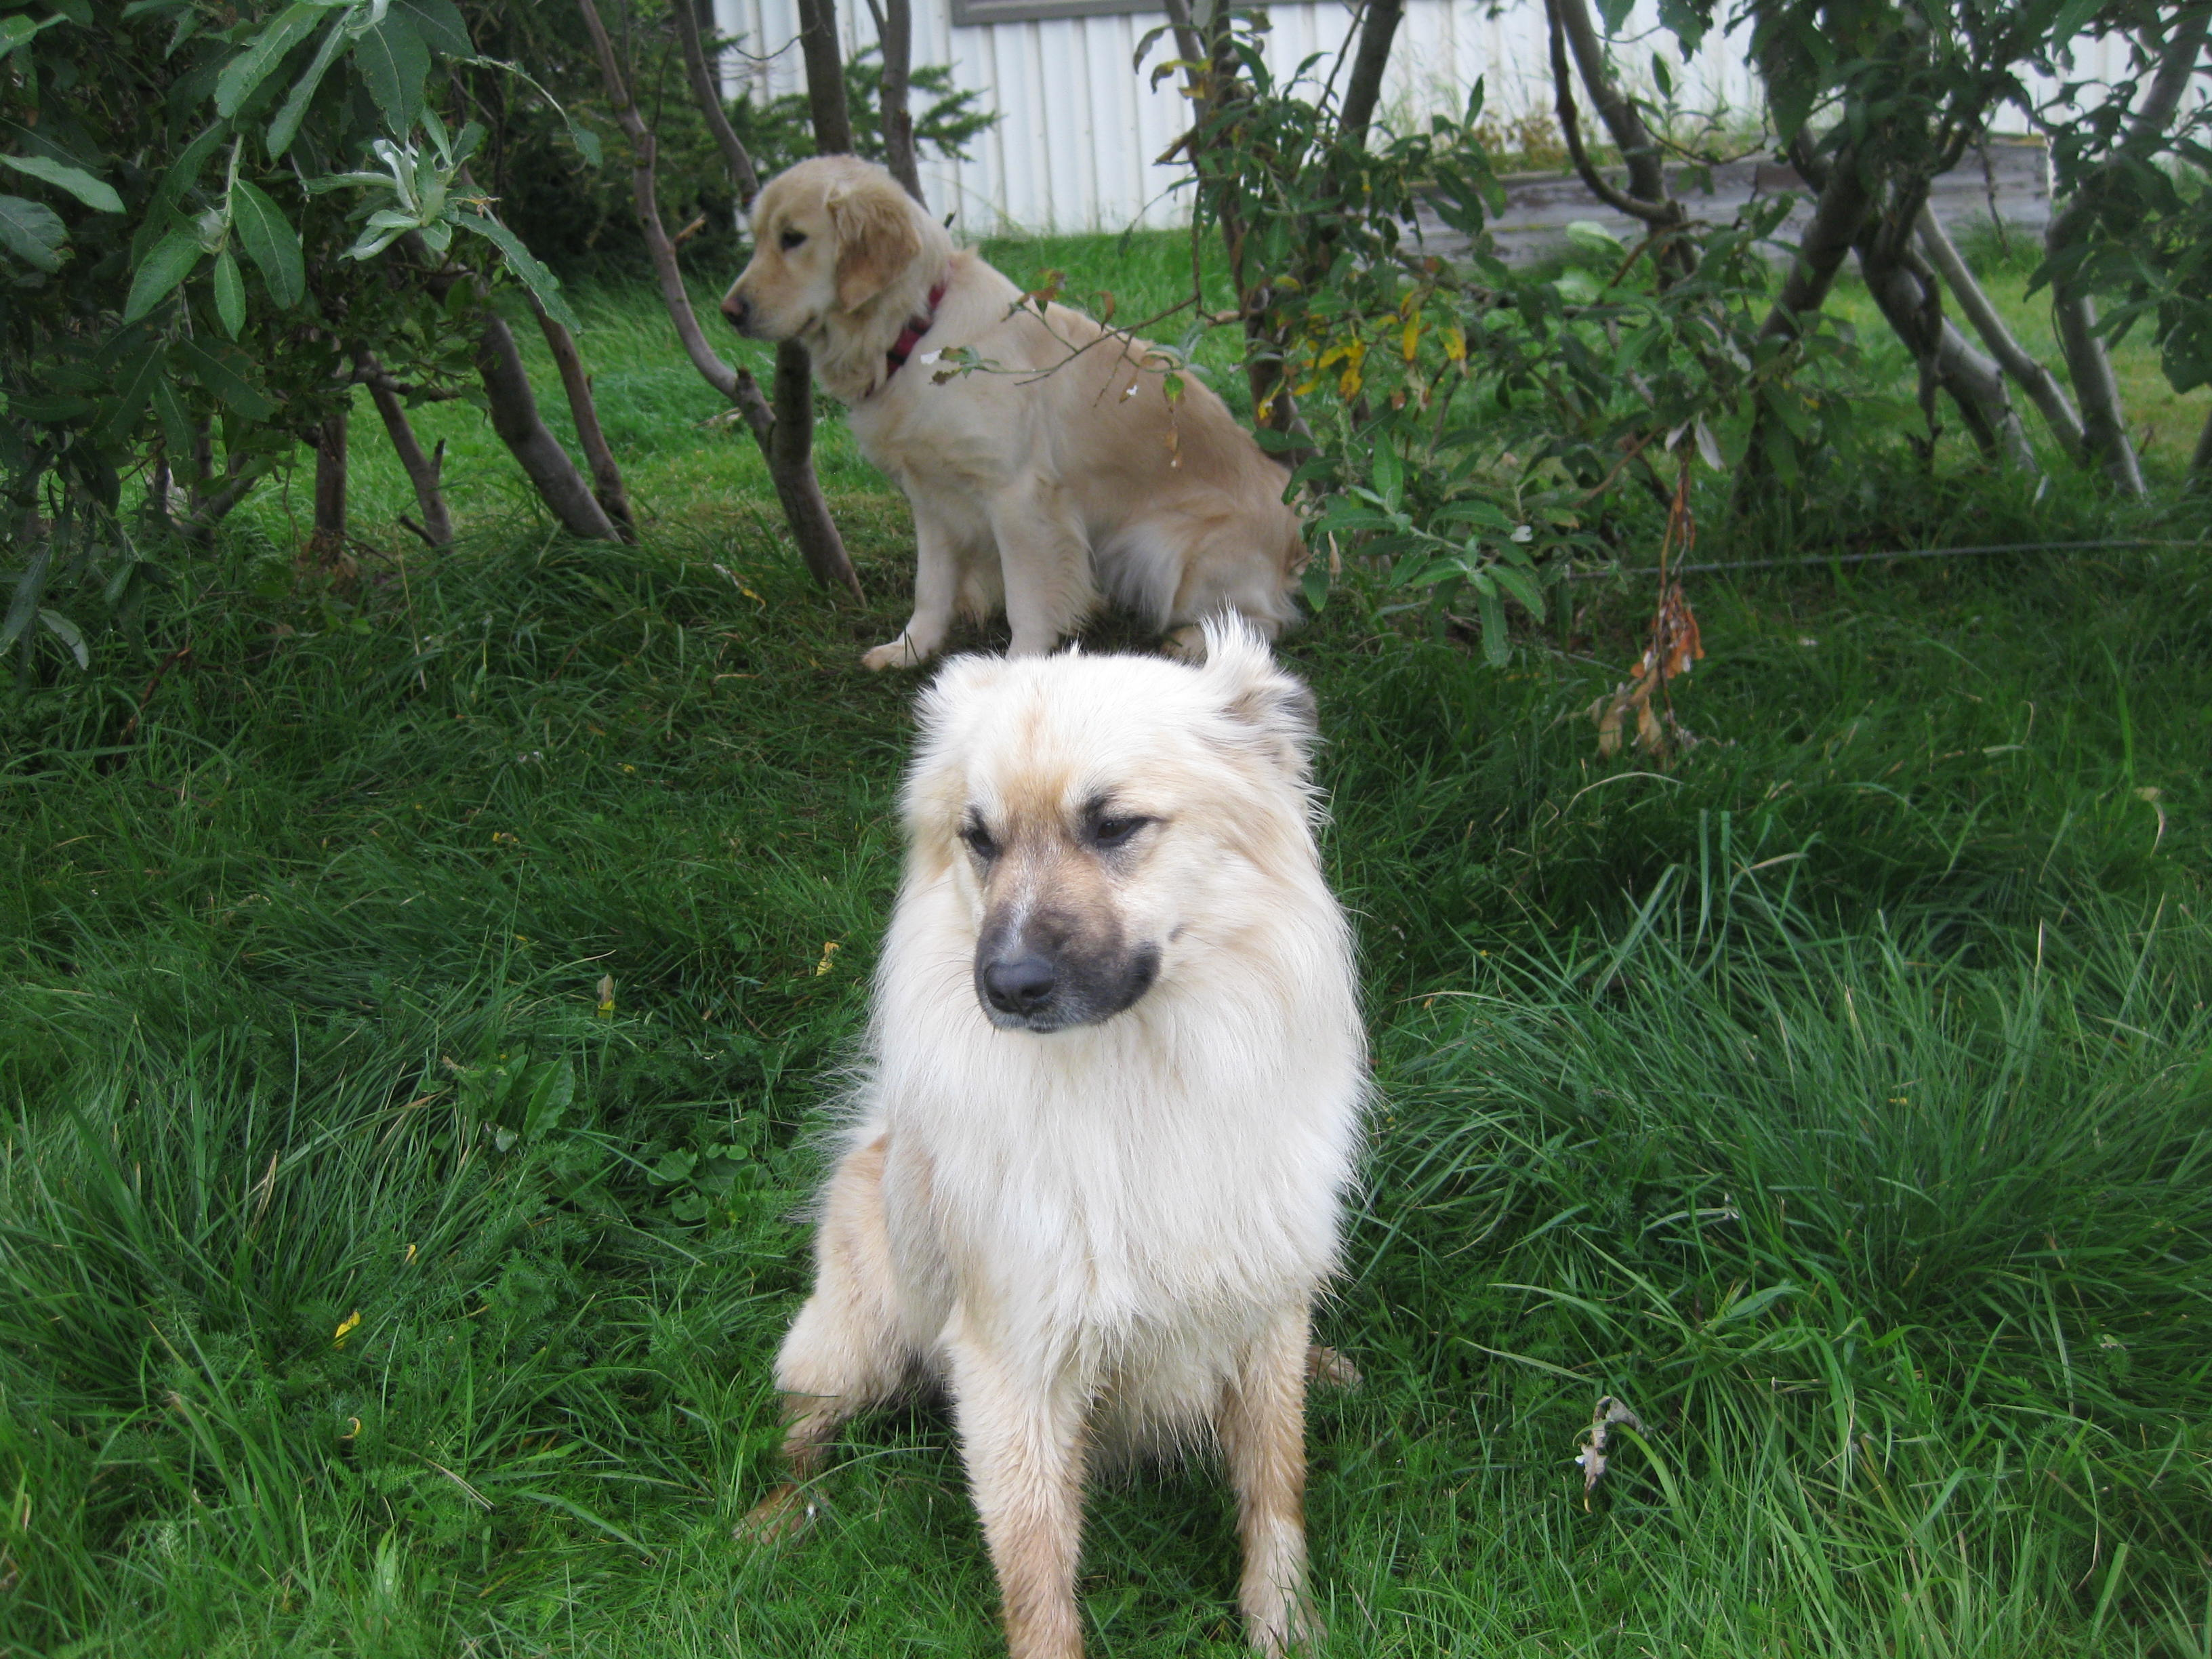 Icelandic Sheepdog and lab